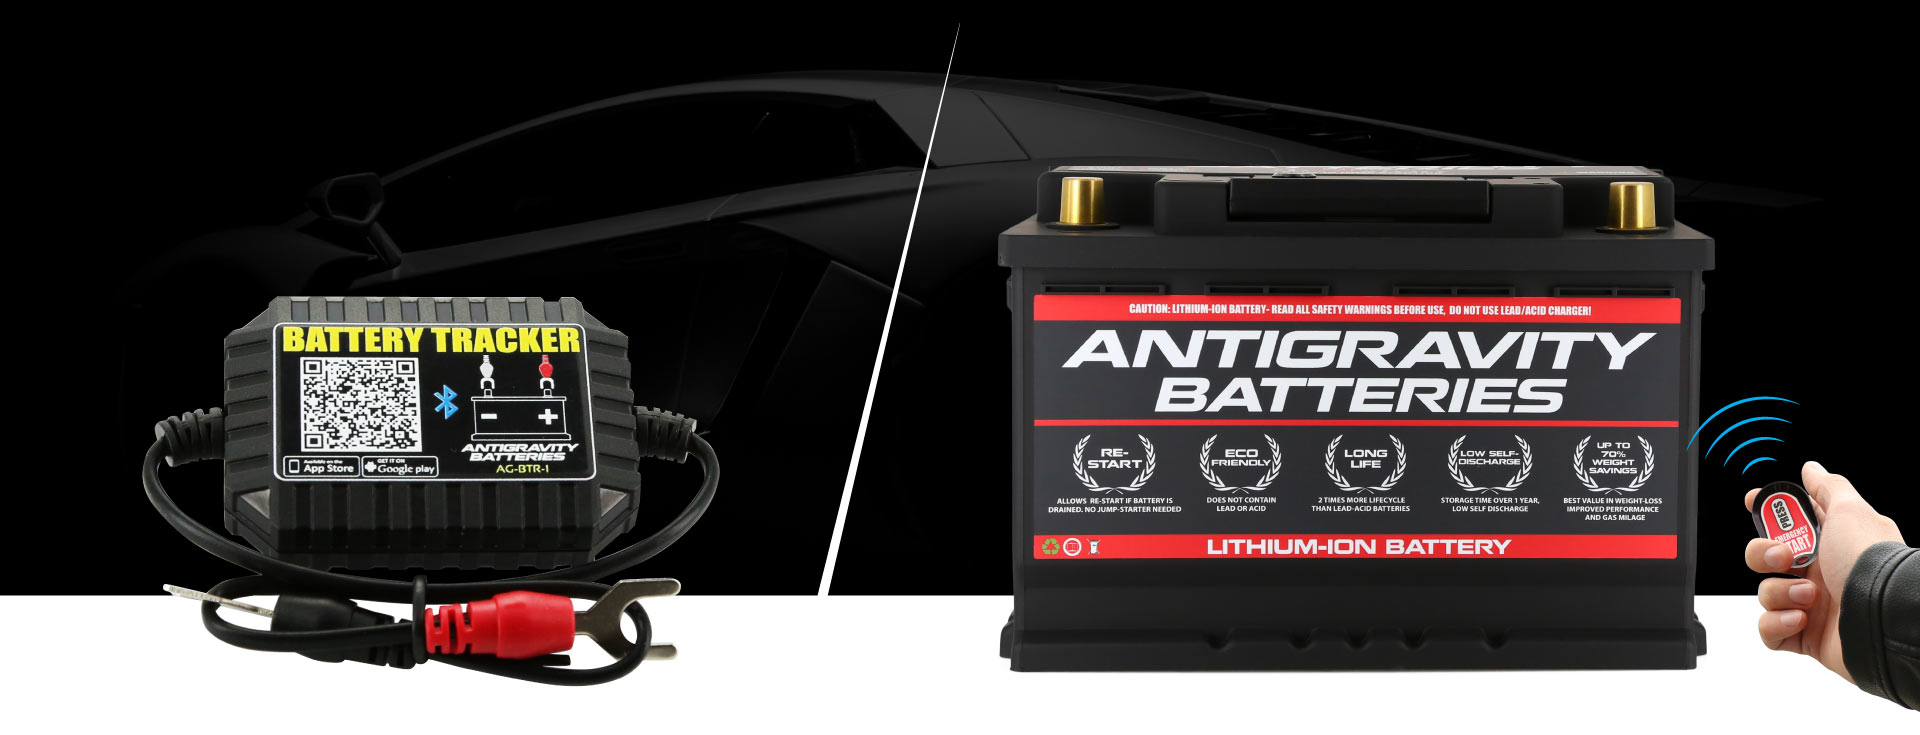 Antigravity NEW Automotive Batteries, Bluetooth Trackers